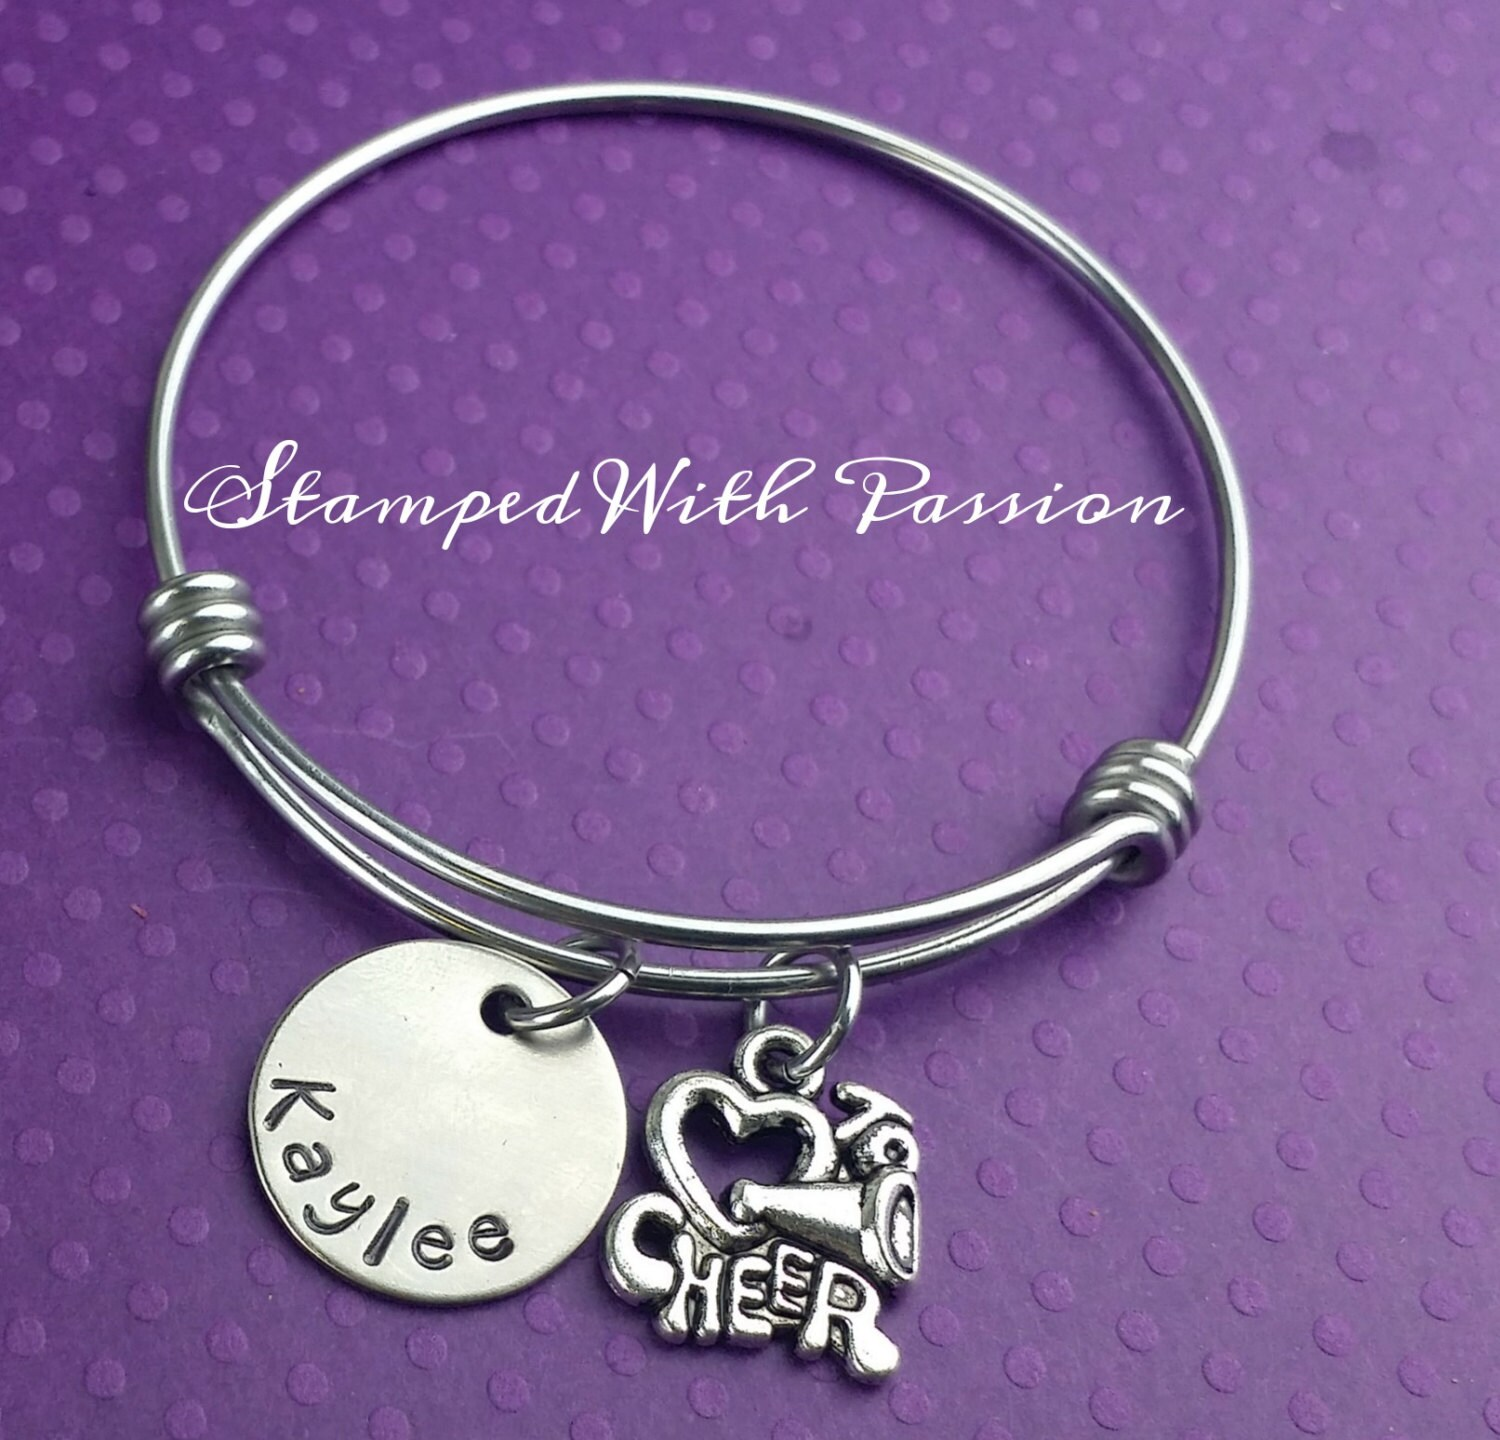 Cheer Bangle Bracelet Charm Bracelet By StampedWithPassion